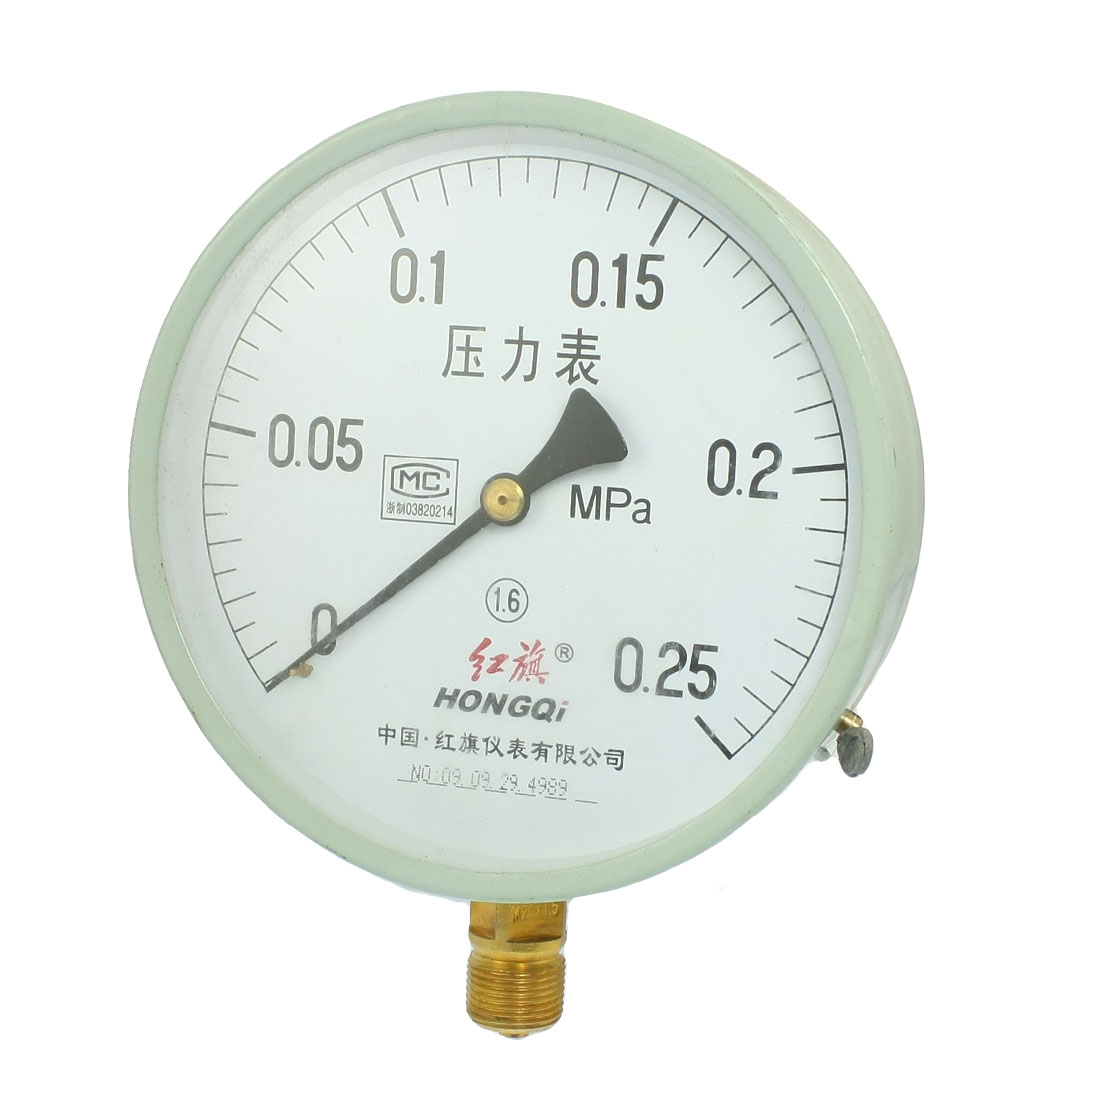 0-0.25MPa 20mm Thread Class 1.6 Compressor Air Pressure Gauge Y-150